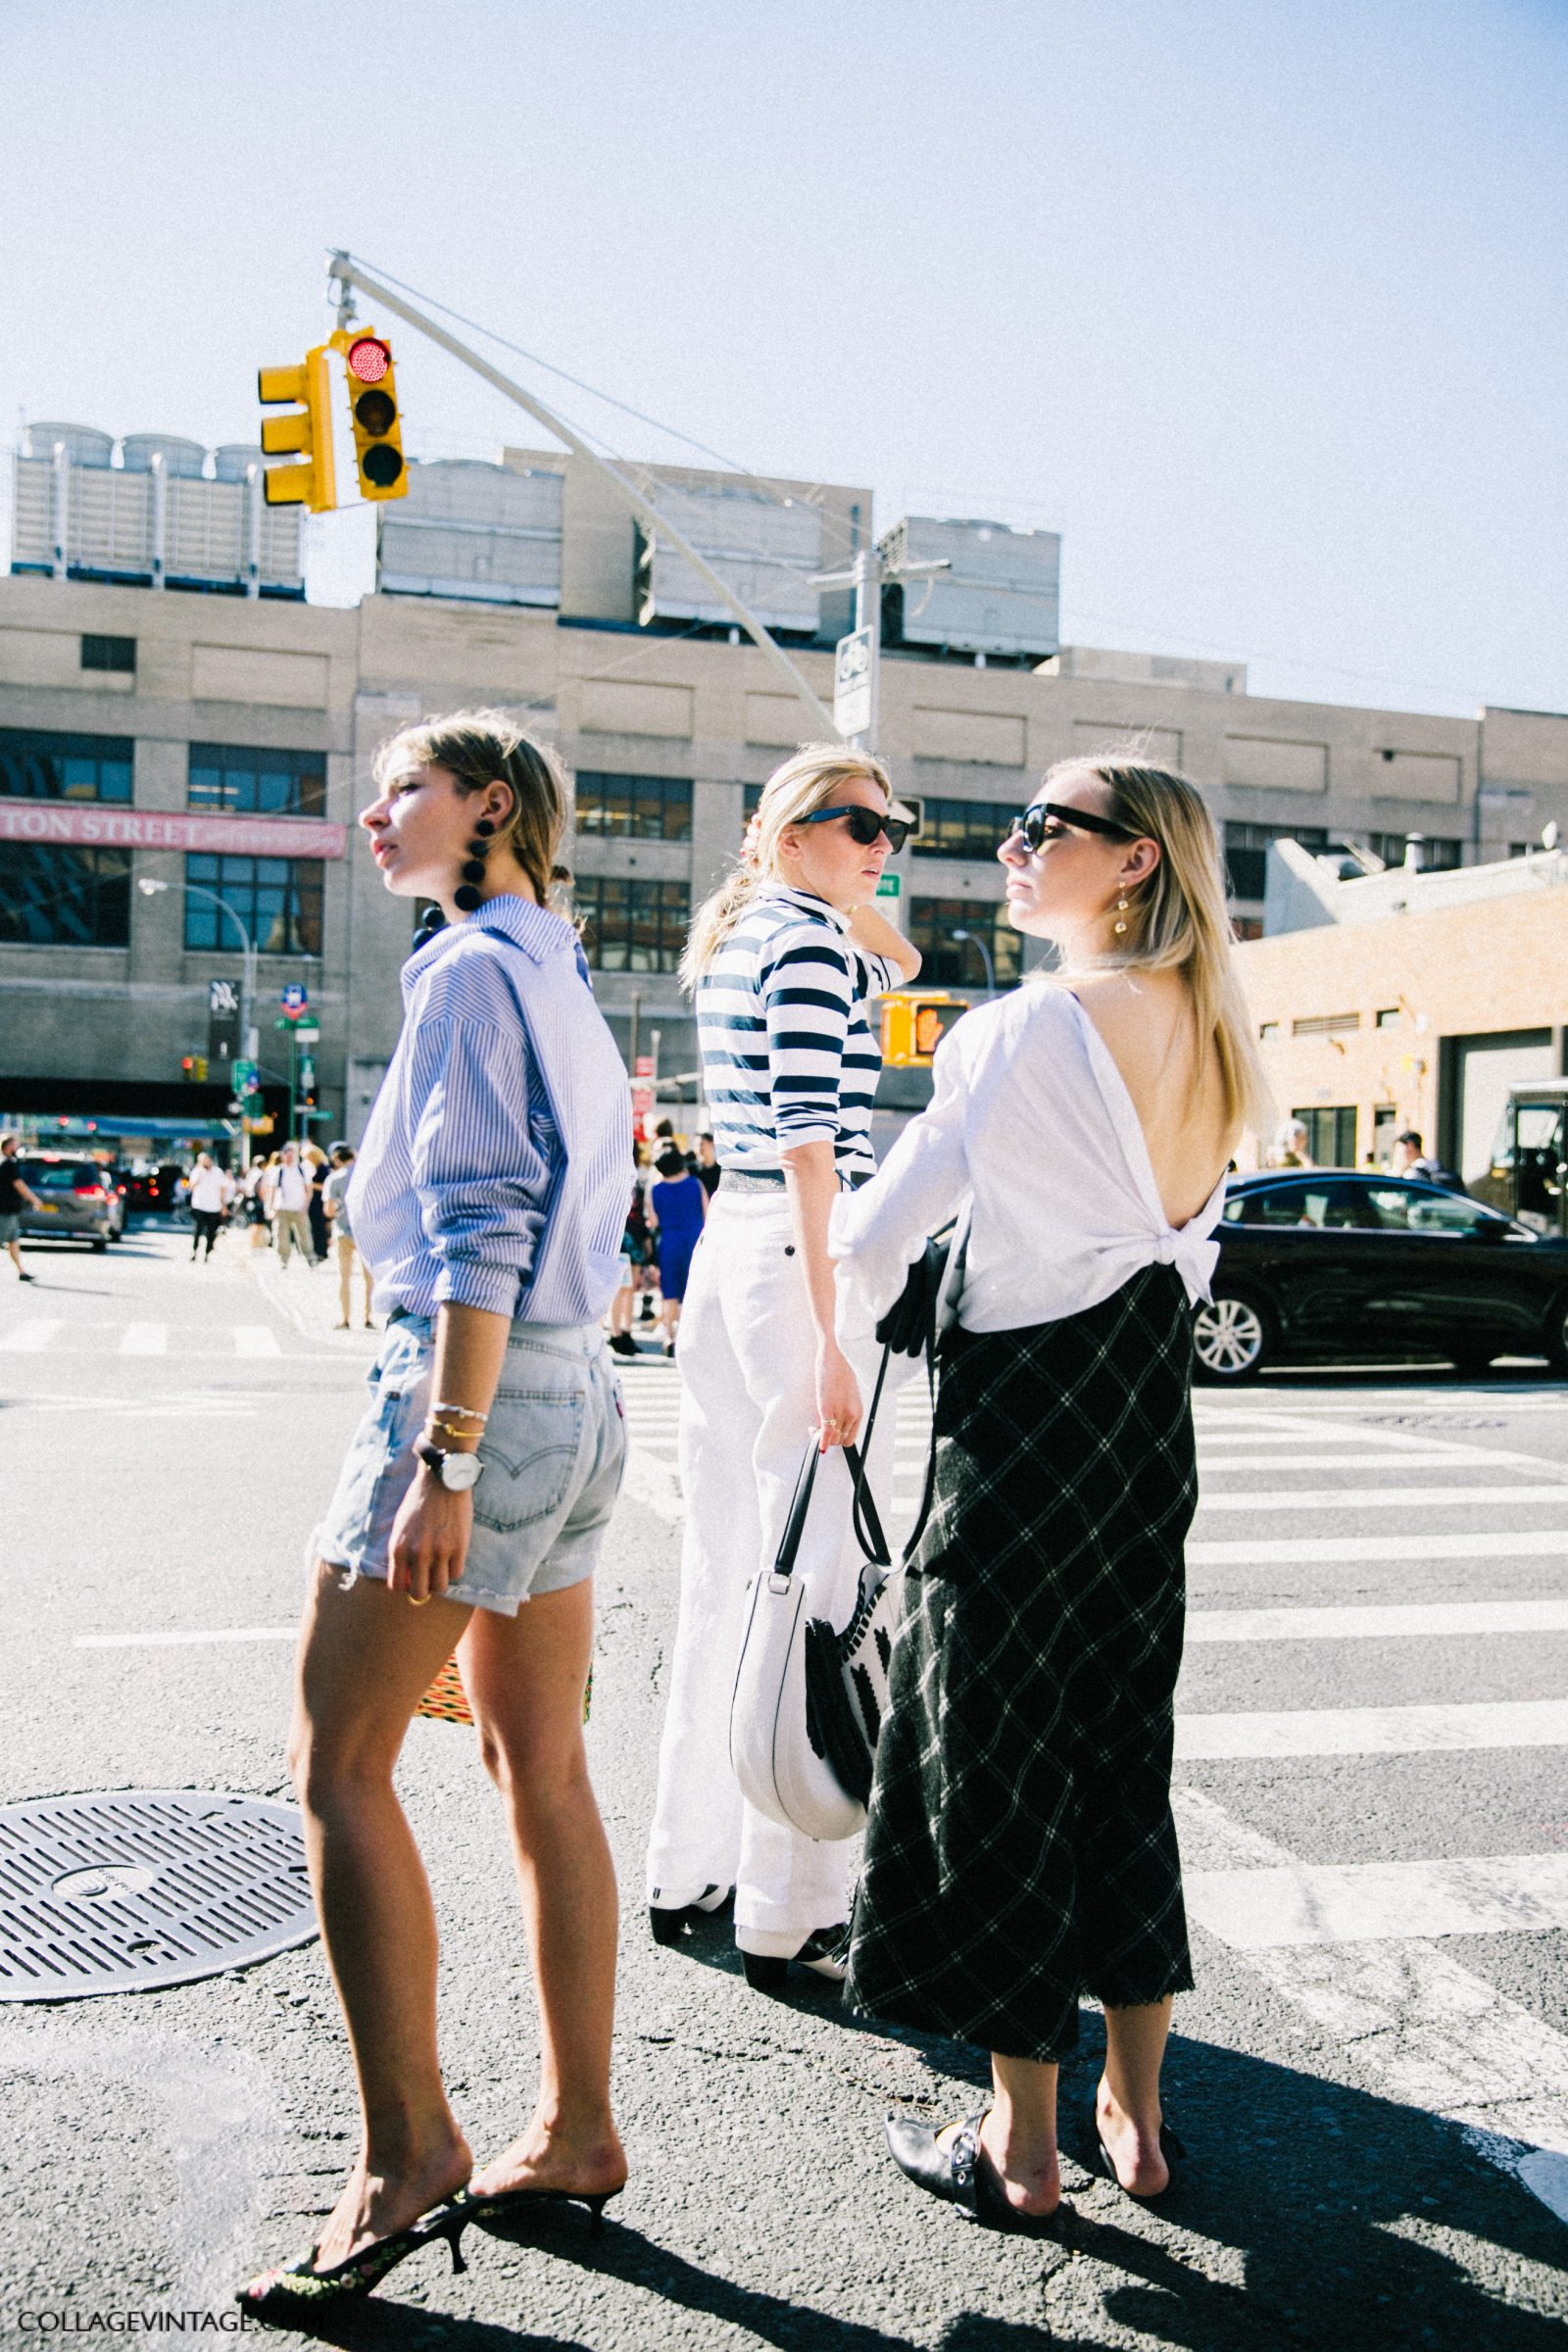 nyfw-new_york_fashion_week_ss17-street_style-outfits-collage_vintage-vintage-phillip_lim-the-row-proenza_schouler-rossie_aussolin-407